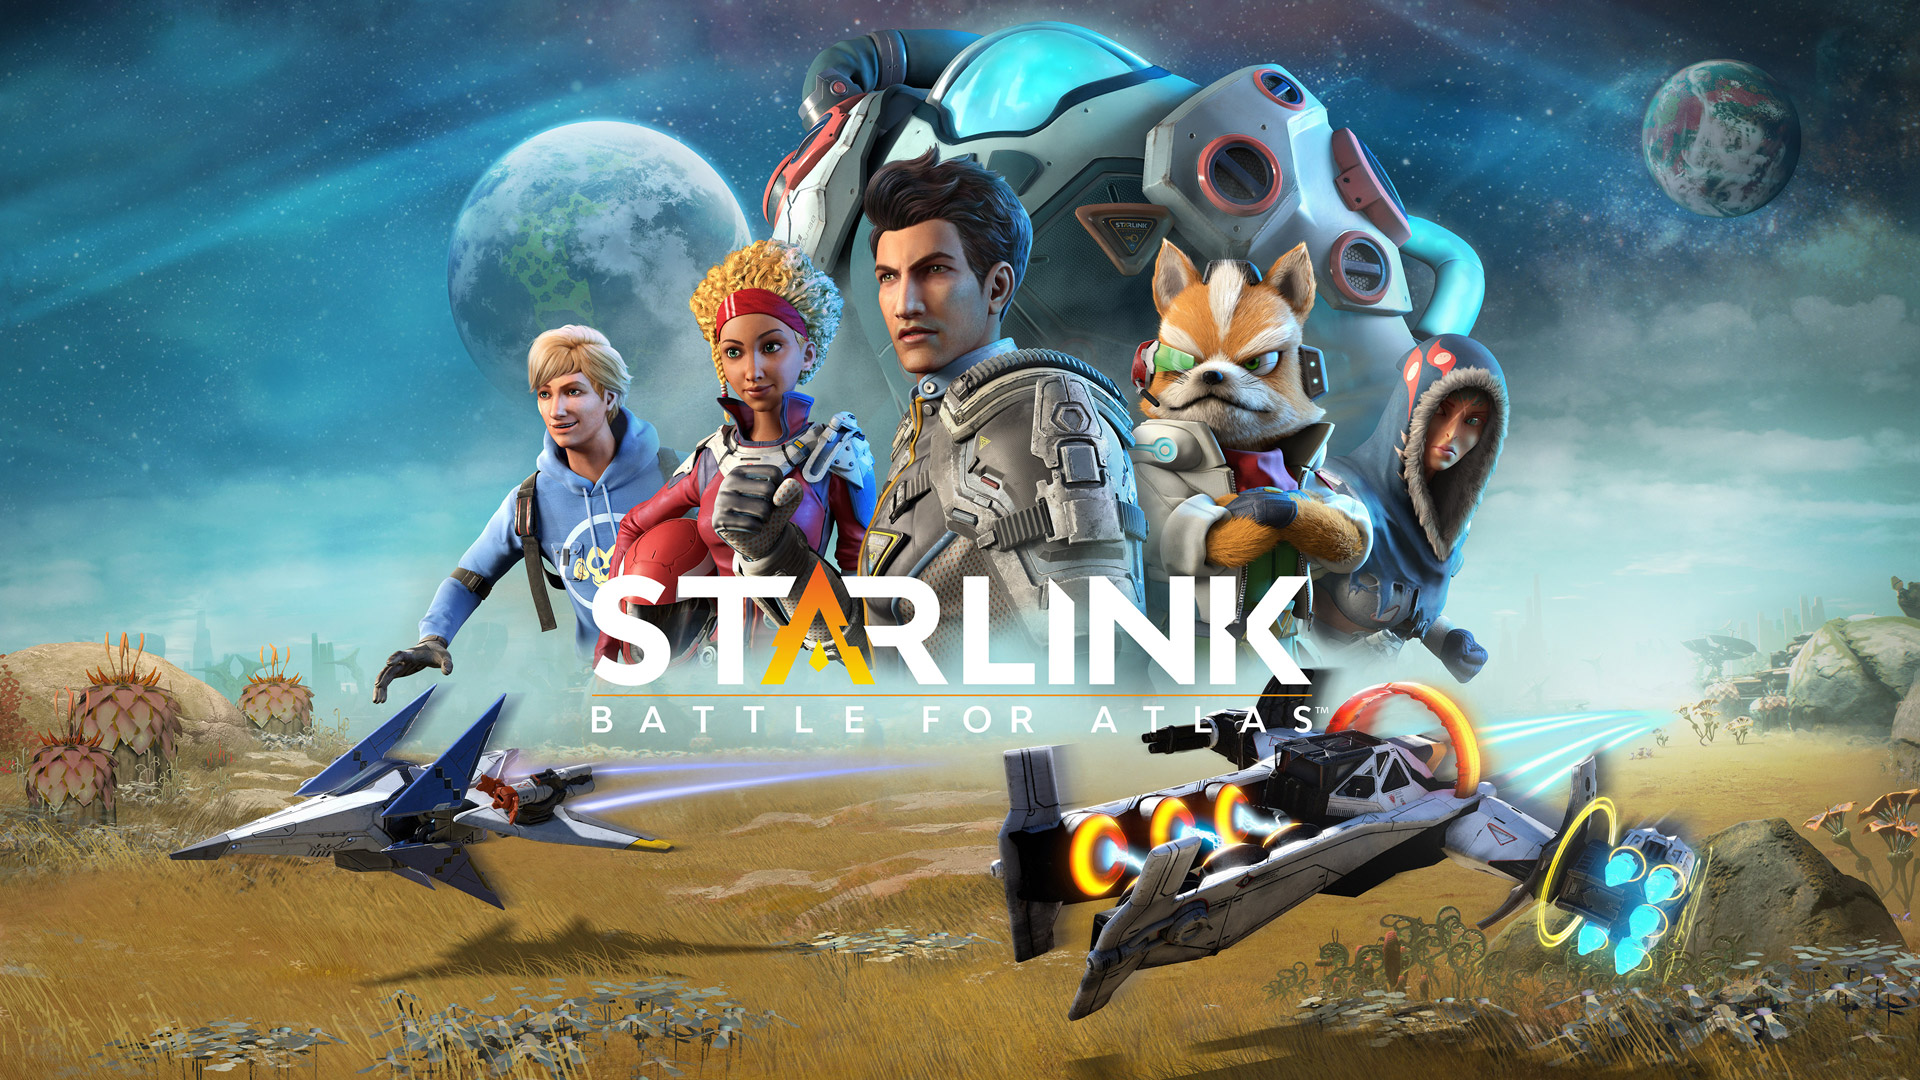 Free Starlink: Battle for Atlas Wallpaper in 1920x1080